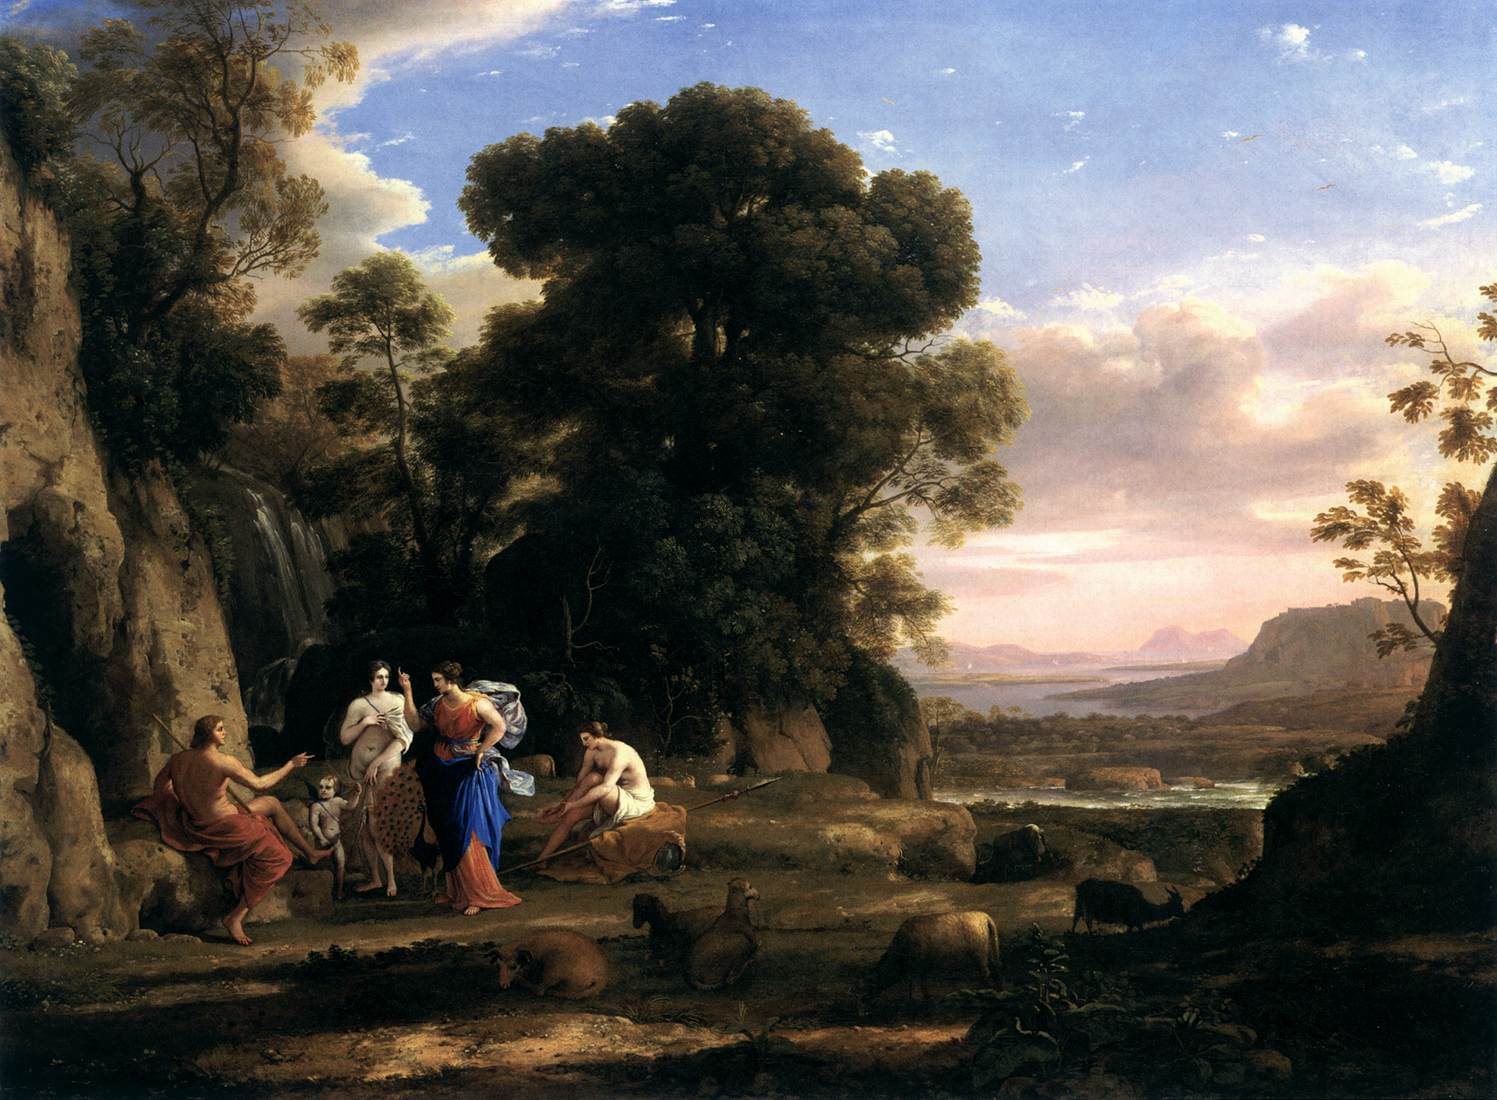 The judgment of Paris Picture, The judgment of Paris Image